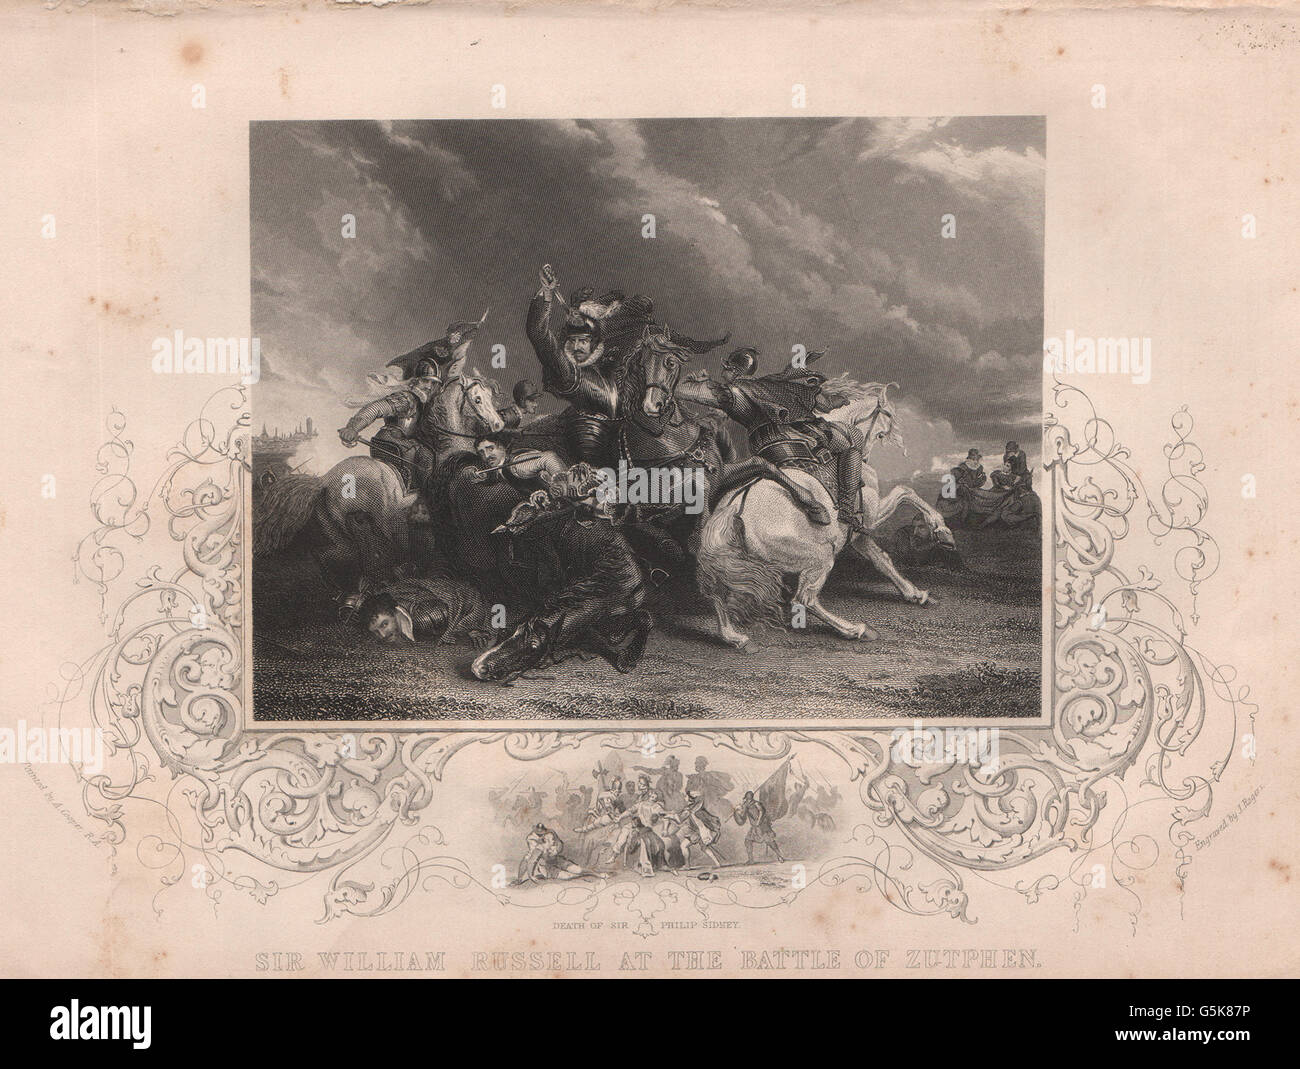 SIR WILLIAM RUSSELL: At the Battle of Zutphen. Death of Sir Philip Sidney, 1853 - Stock Image